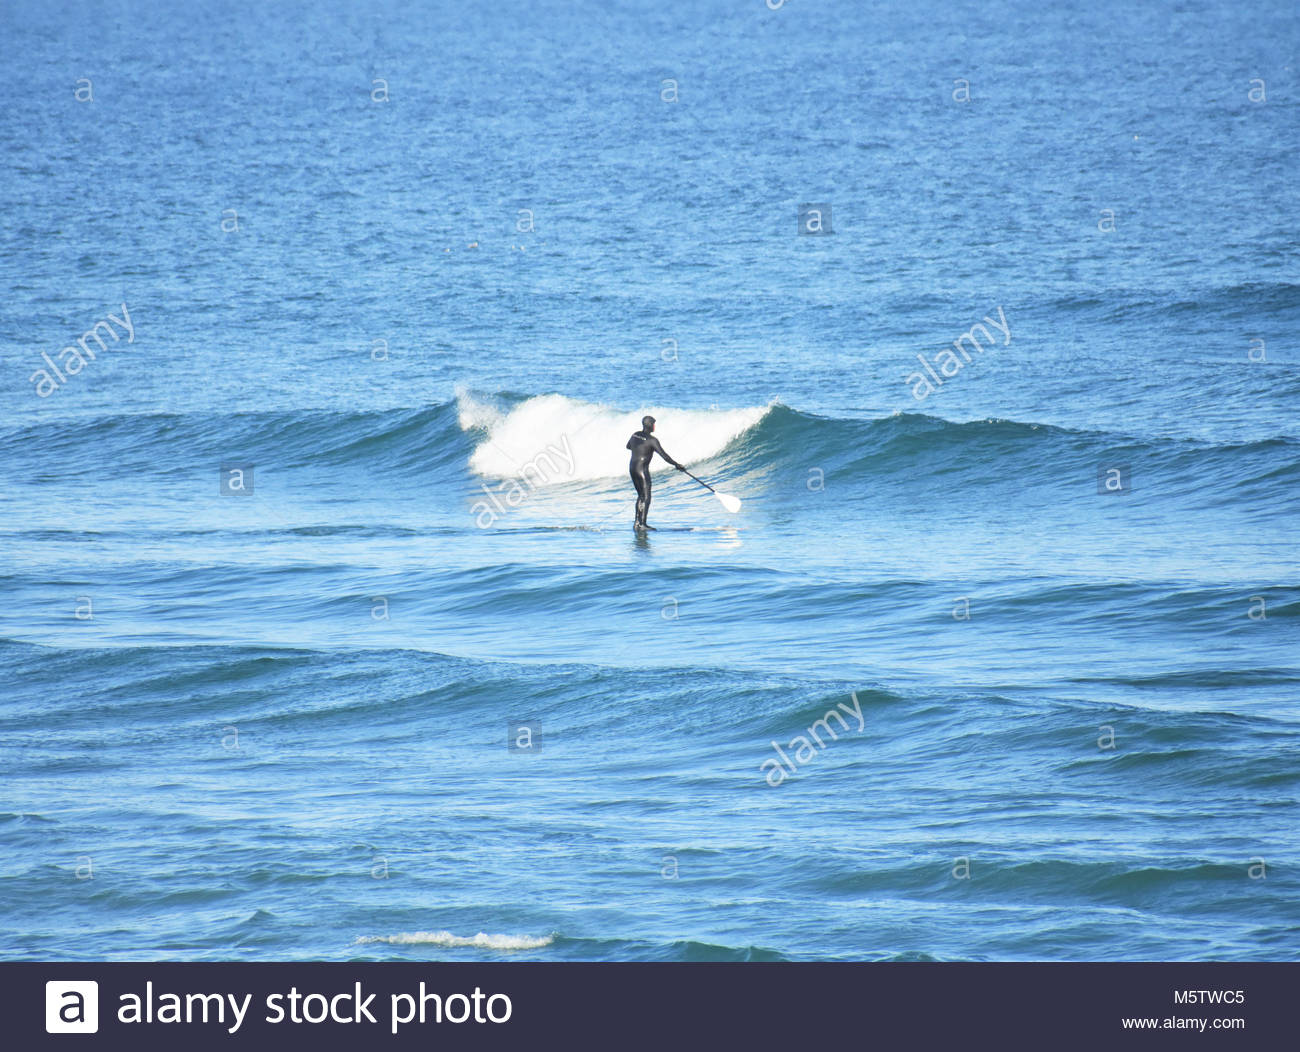 Brave, solo surfer facing the waves alone in Ogunquit, Maine - Stock Image